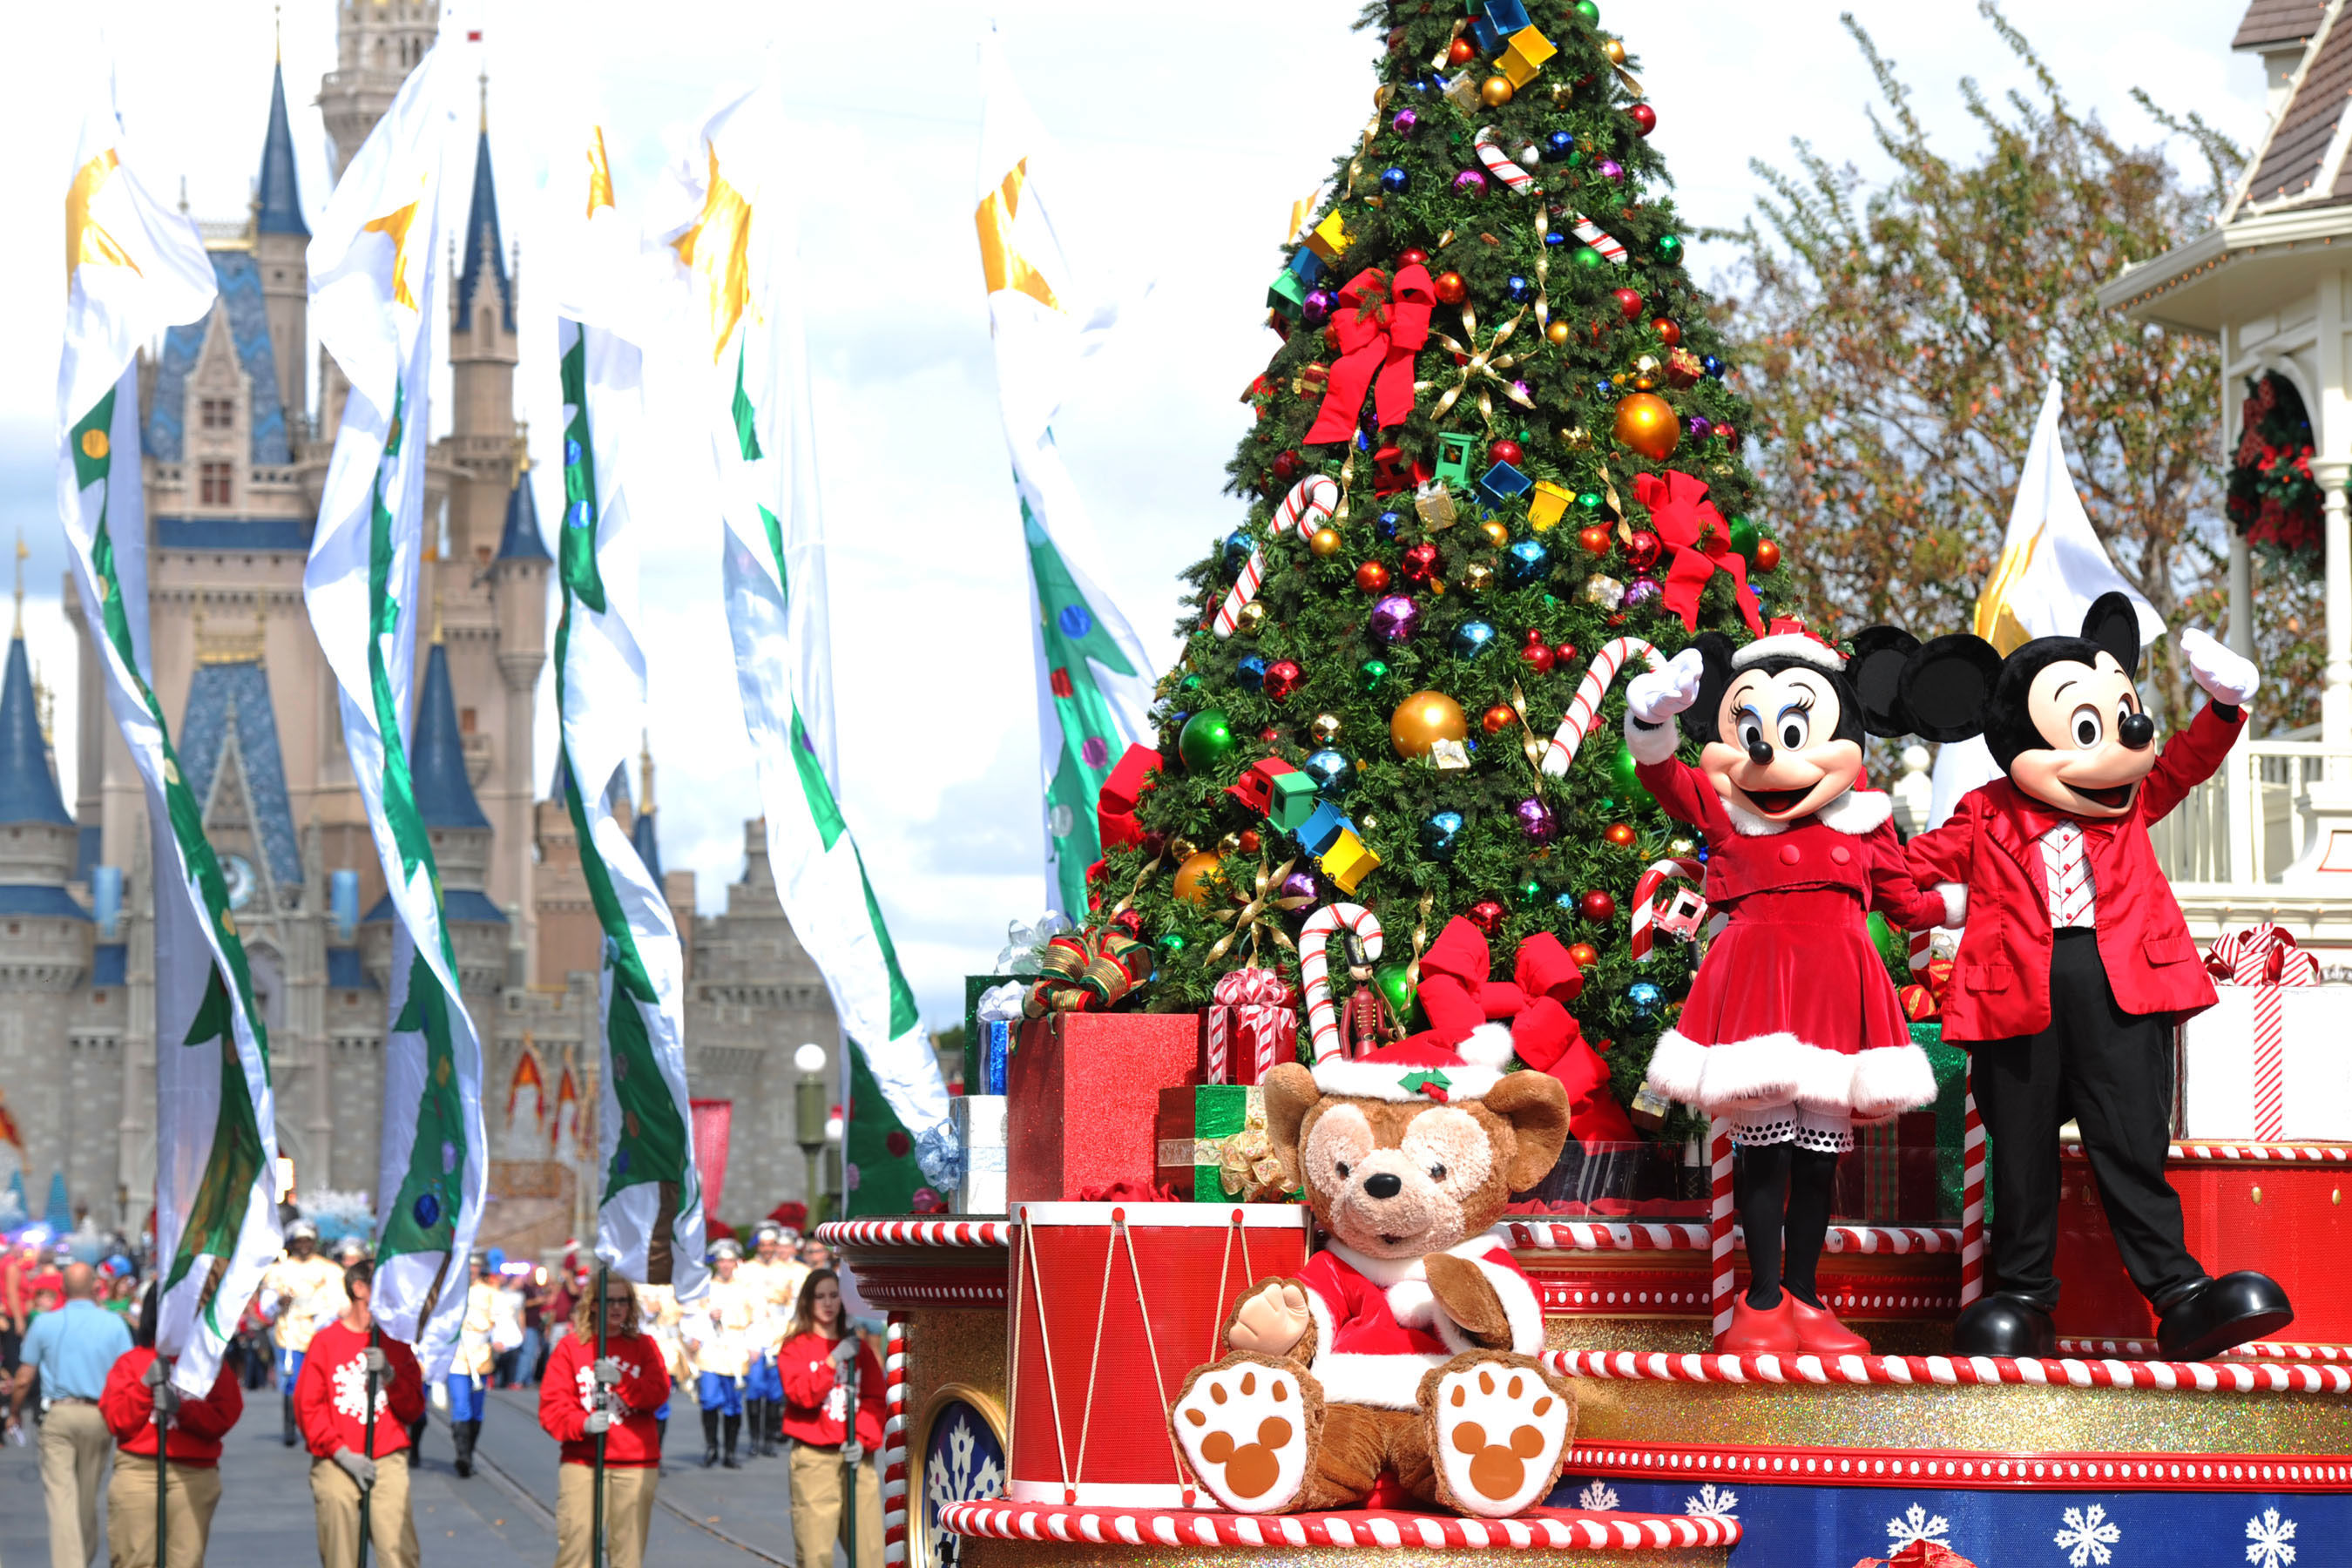 WATCH: Enjoy a Very Walt Disney Christmas with This New Holiday Package